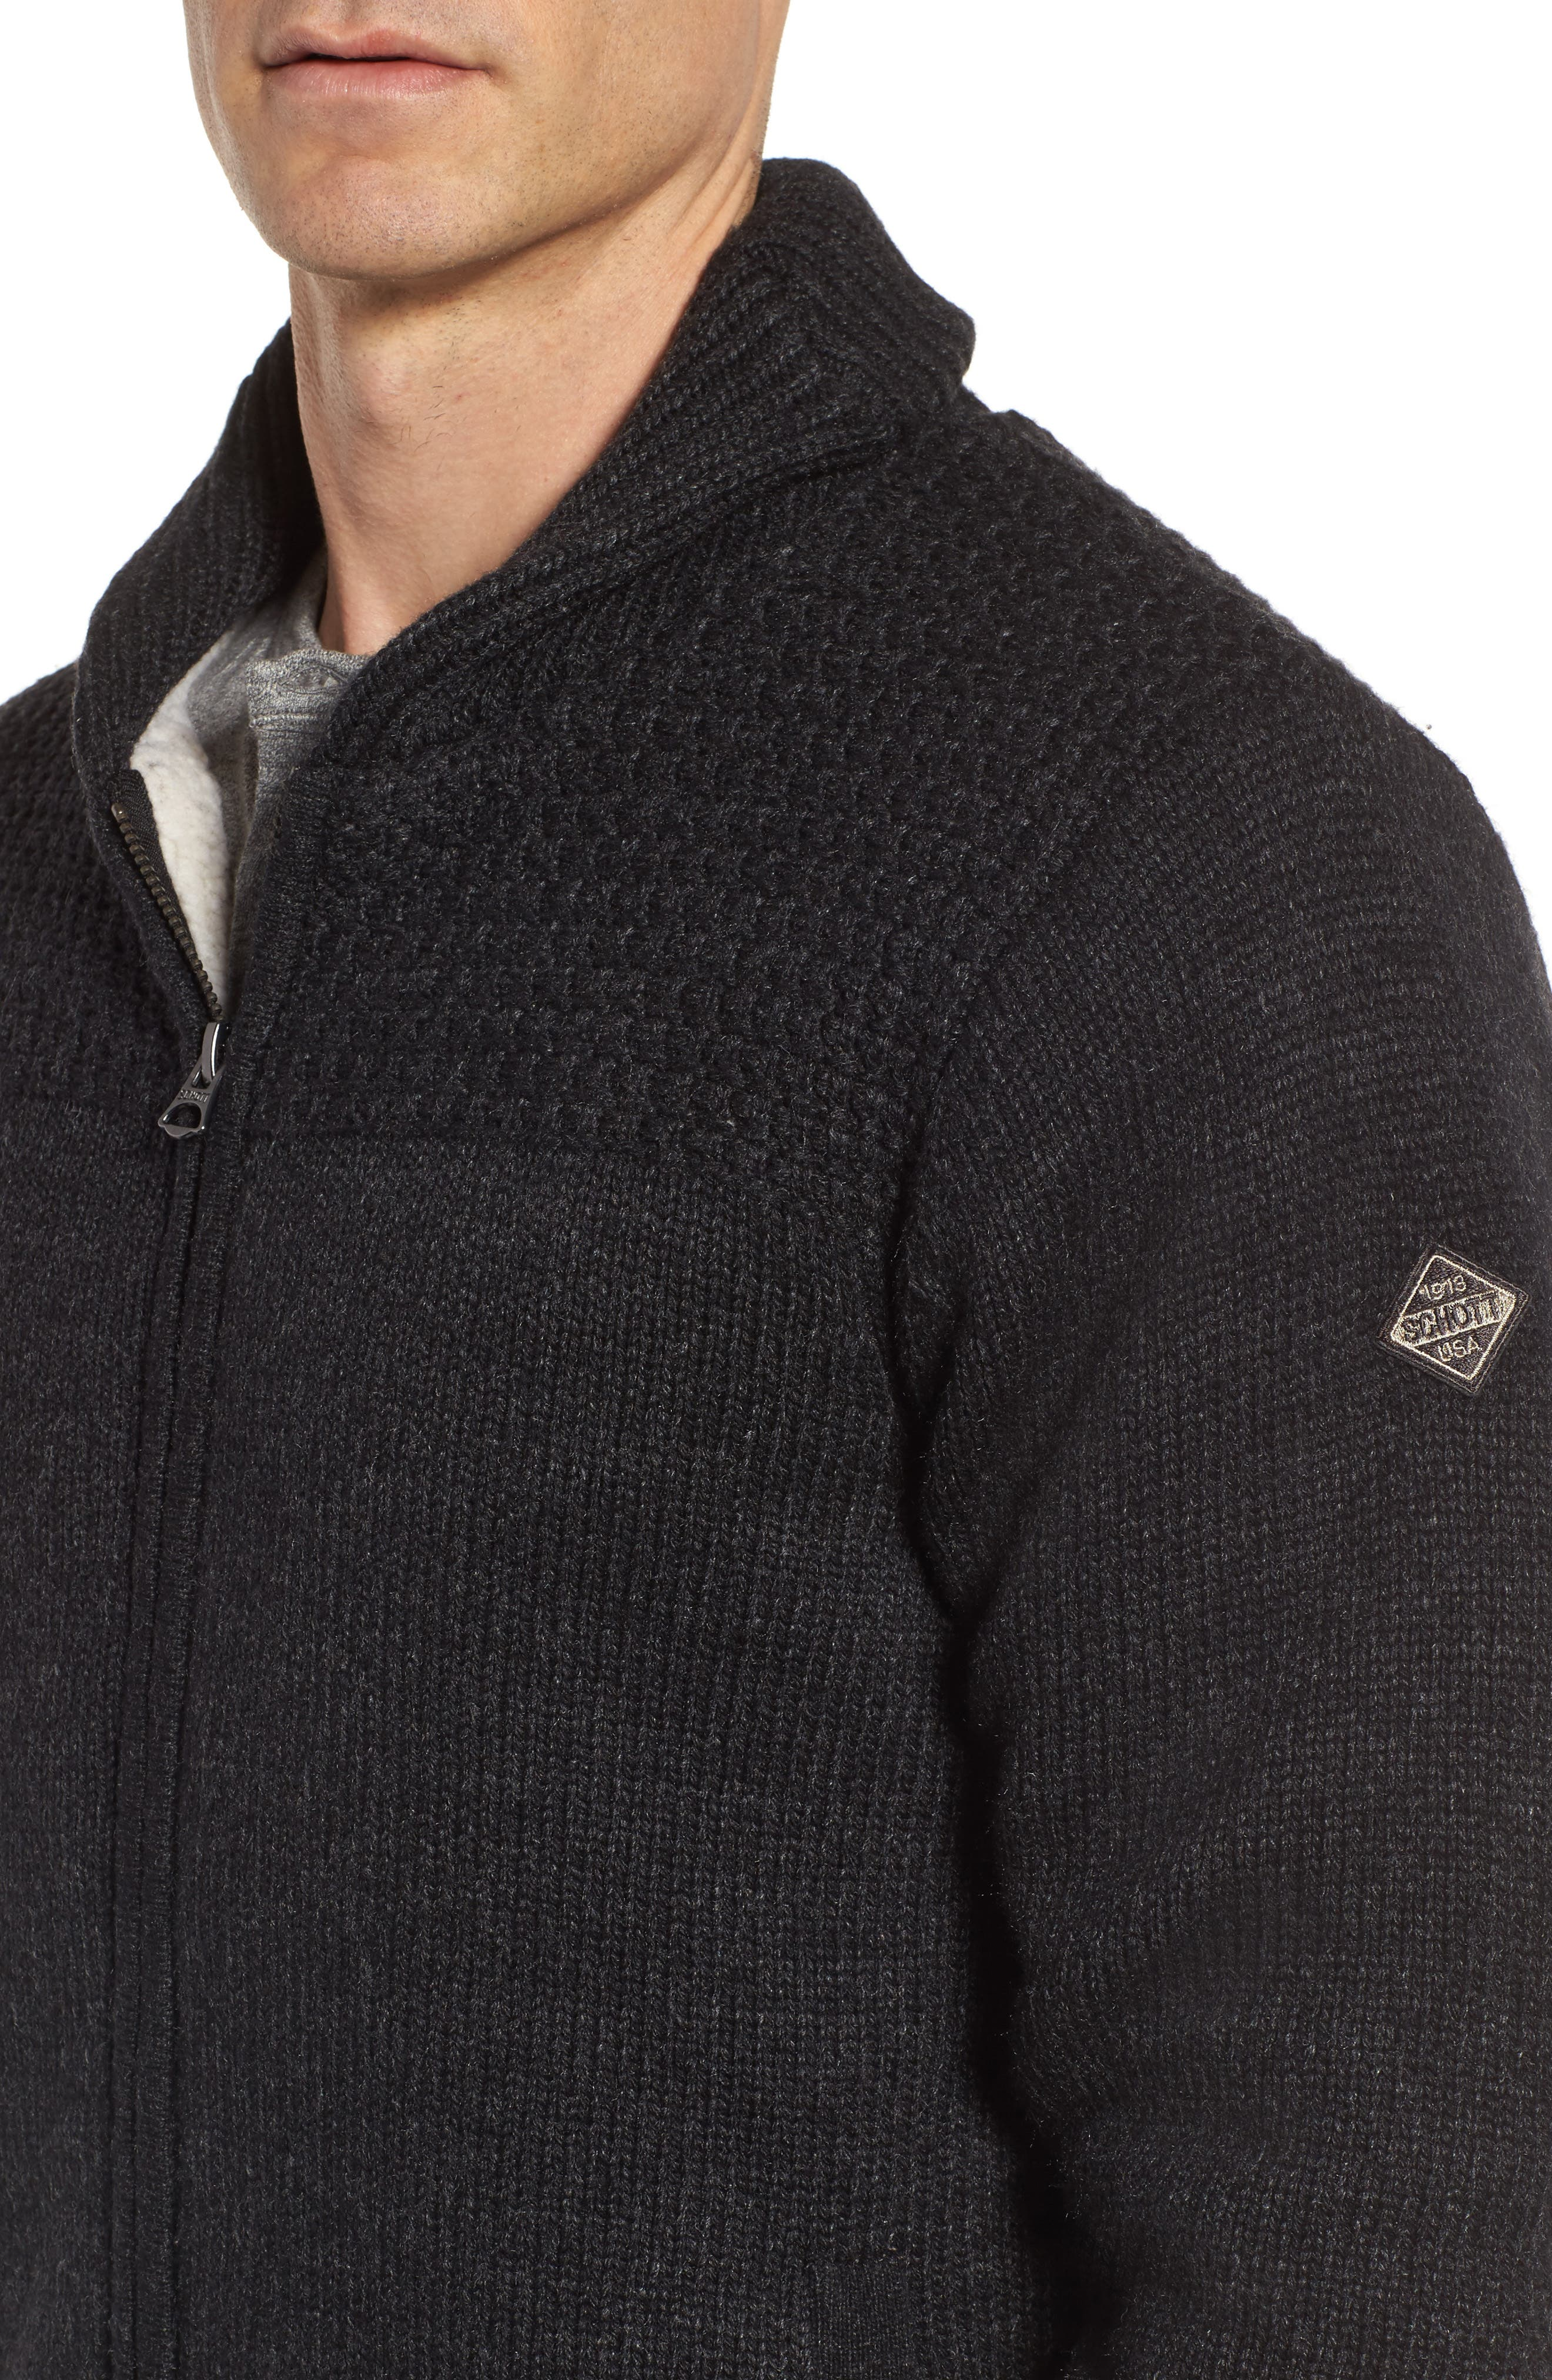 Lined Wool Zip Sweater,                             Alternate thumbnail 5, color,                             BLACK